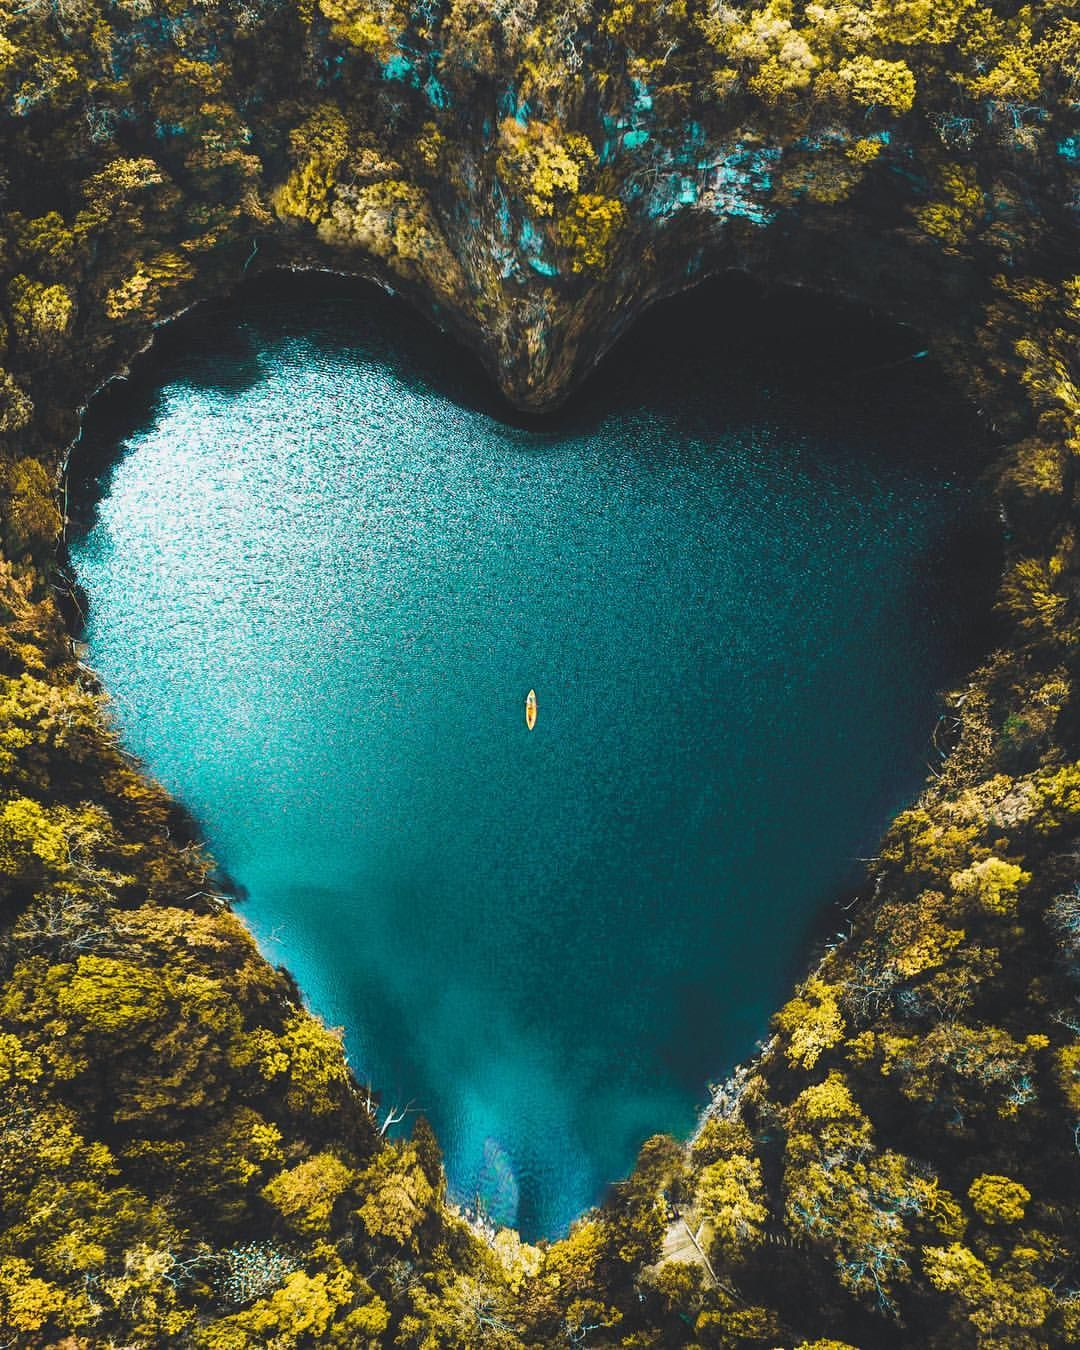 Deep In The Jungle Of A Magical World When You Love Nature So Much It Loves You Back Beautiful Lakes Vacation Trips Photo